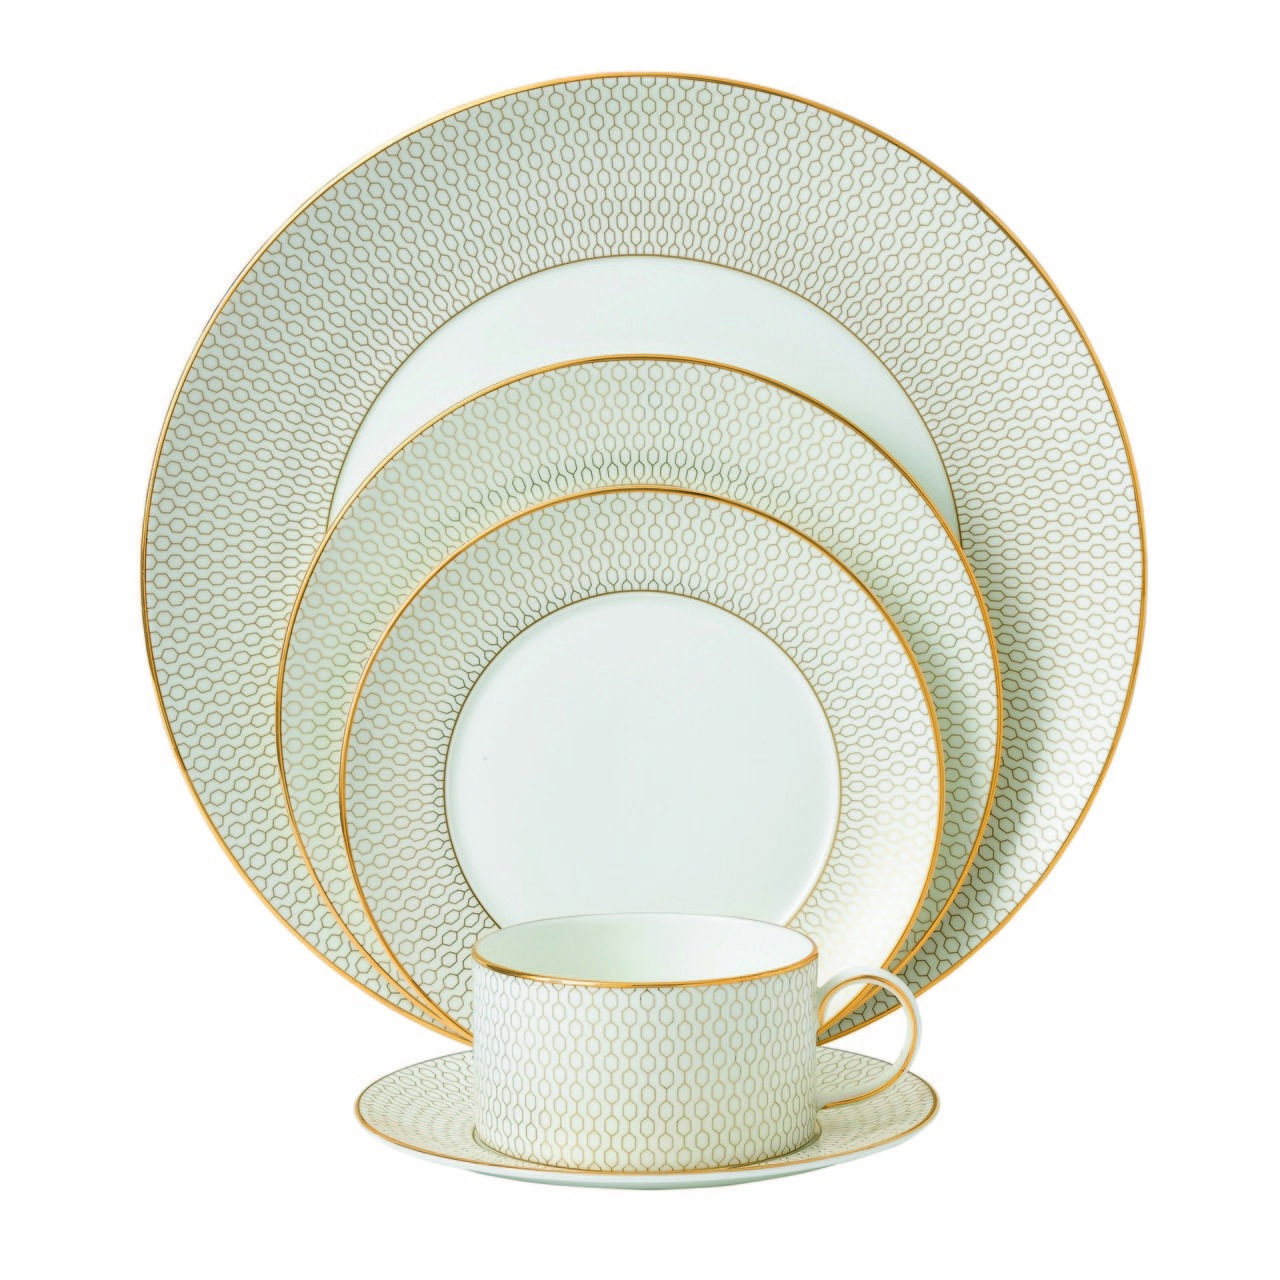 The 5 piece Arris place setting is all you need to create a classy atmosphere. The honeycomb design around the plates a classic Arris collection feature ...  sc 1 st  Pinterest & Arris 5 Piece Place Setting - Vaudeville | Gold Digger | Pinterest ...